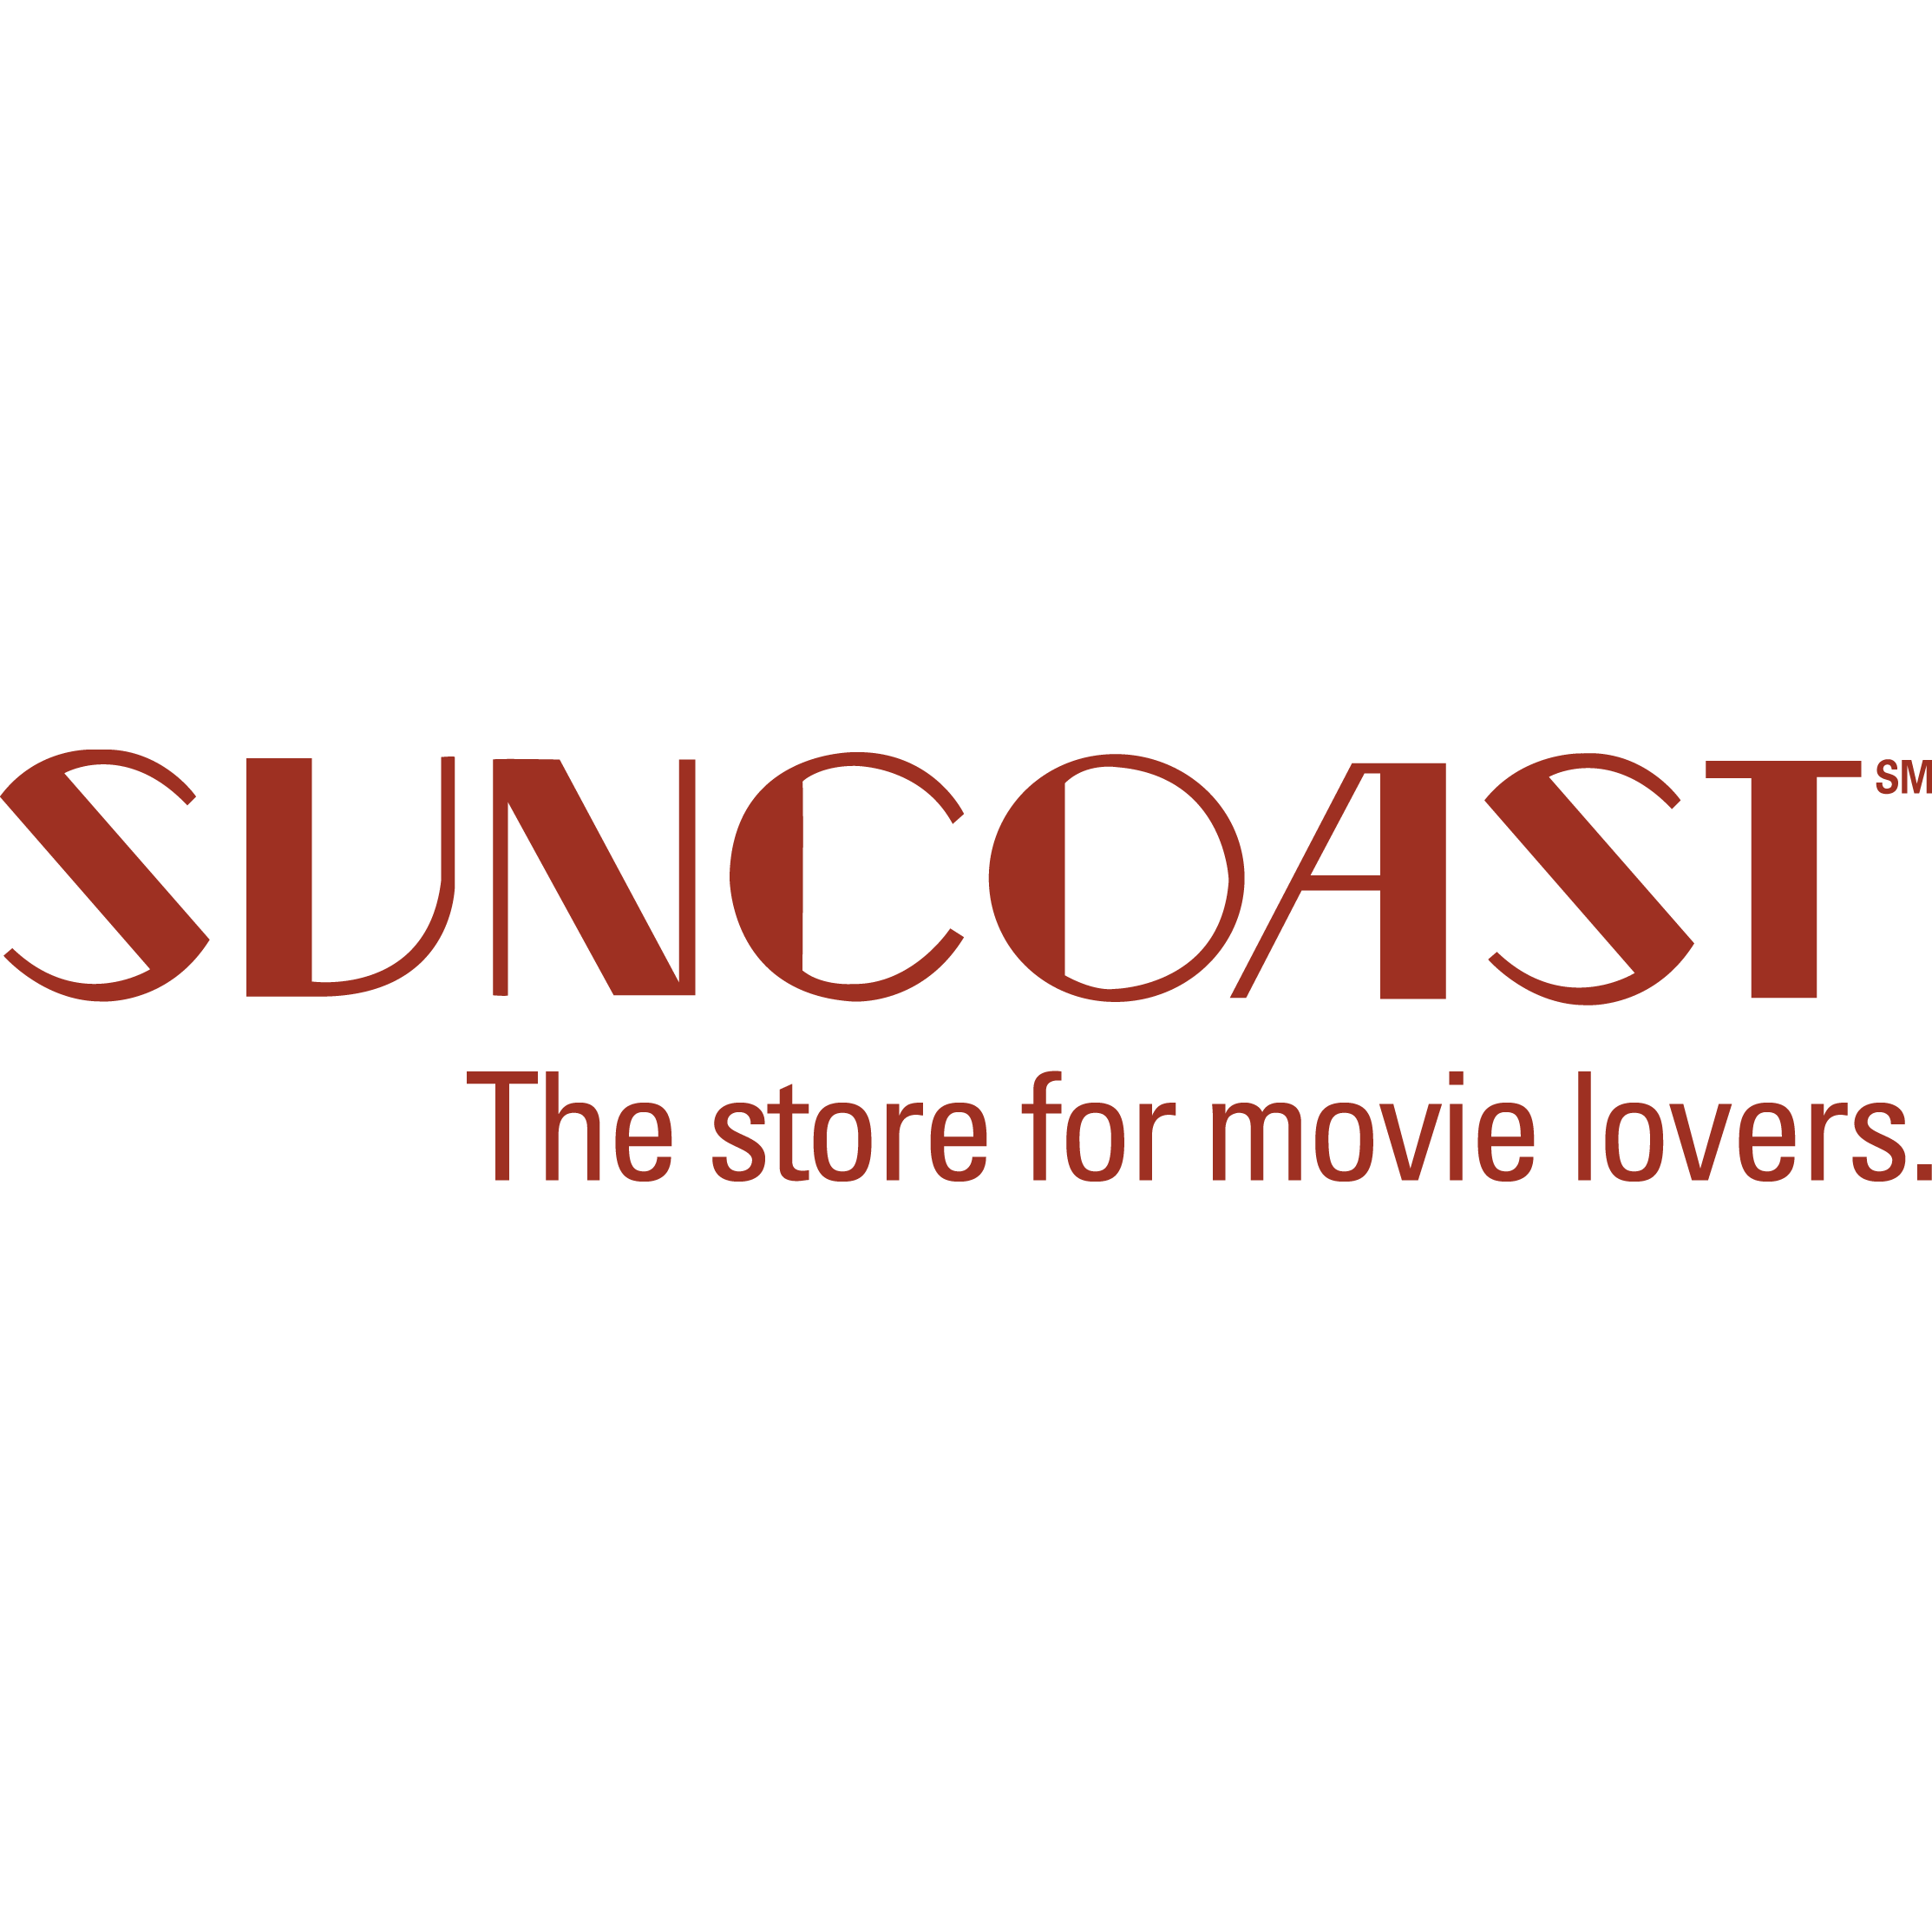 Suncoast Motion Picture Company